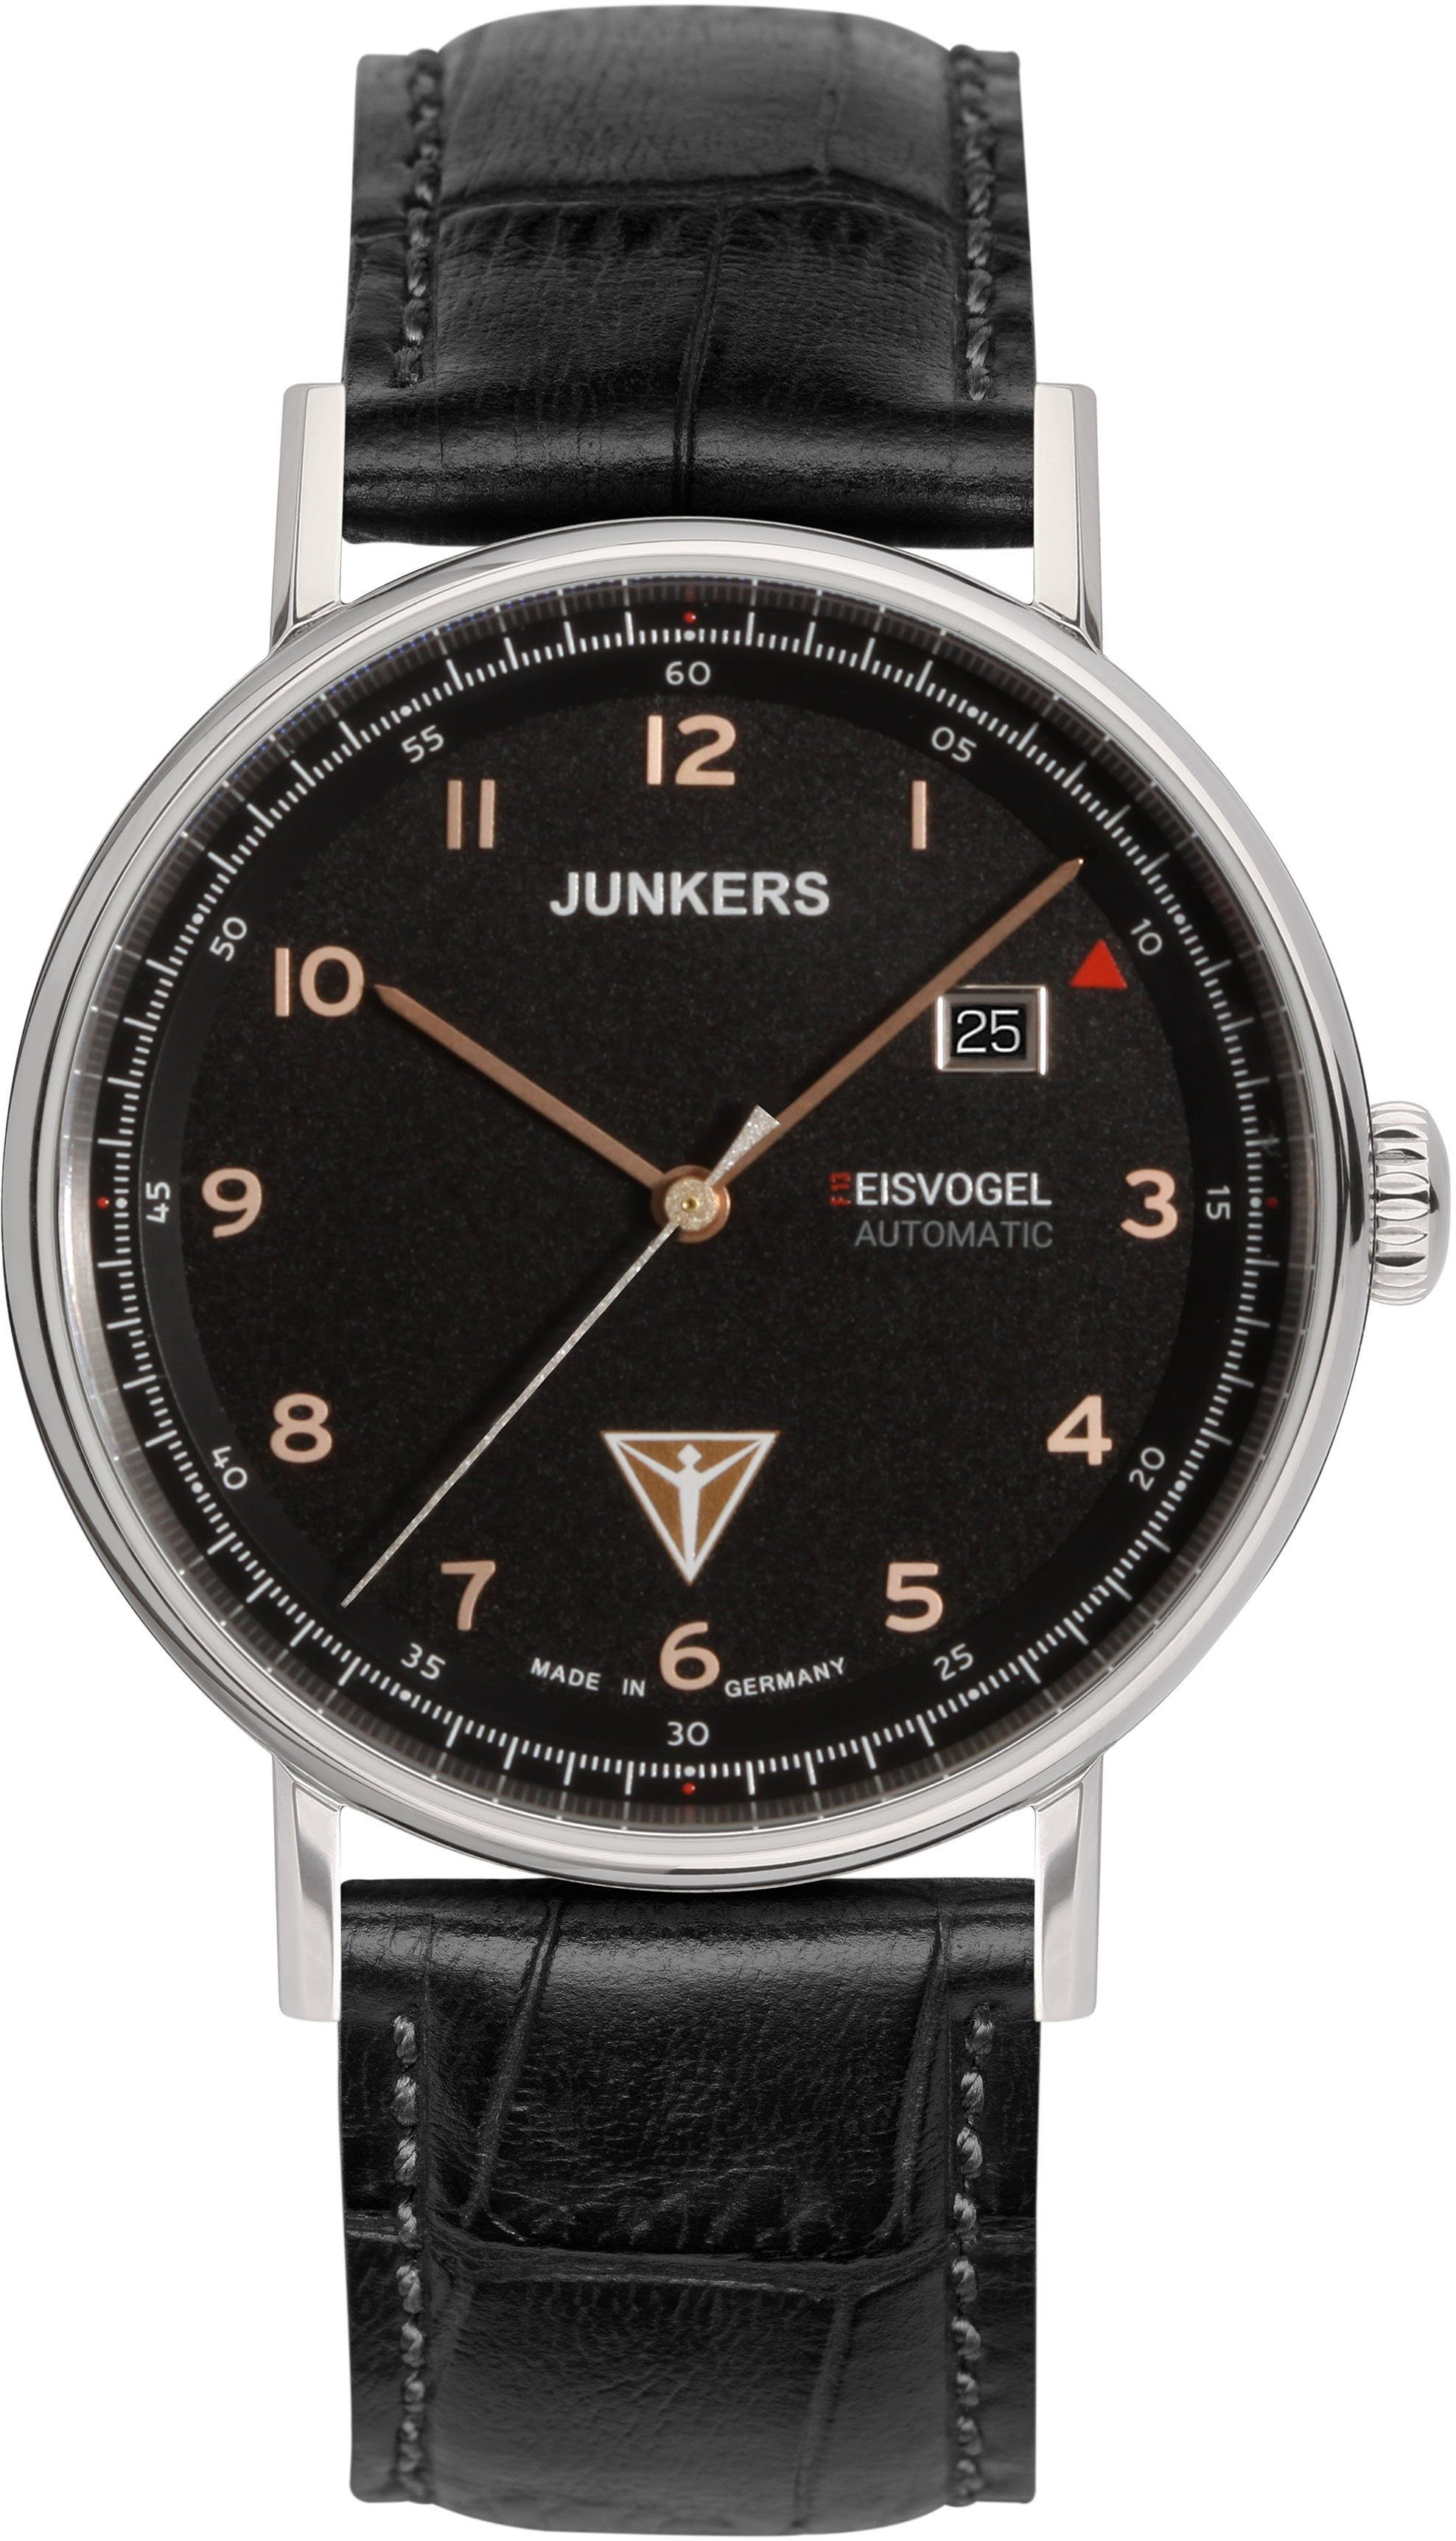 Junkers-Uhren Automatikuhr »EISVOGEL F13, 6754-5« Made in Germany